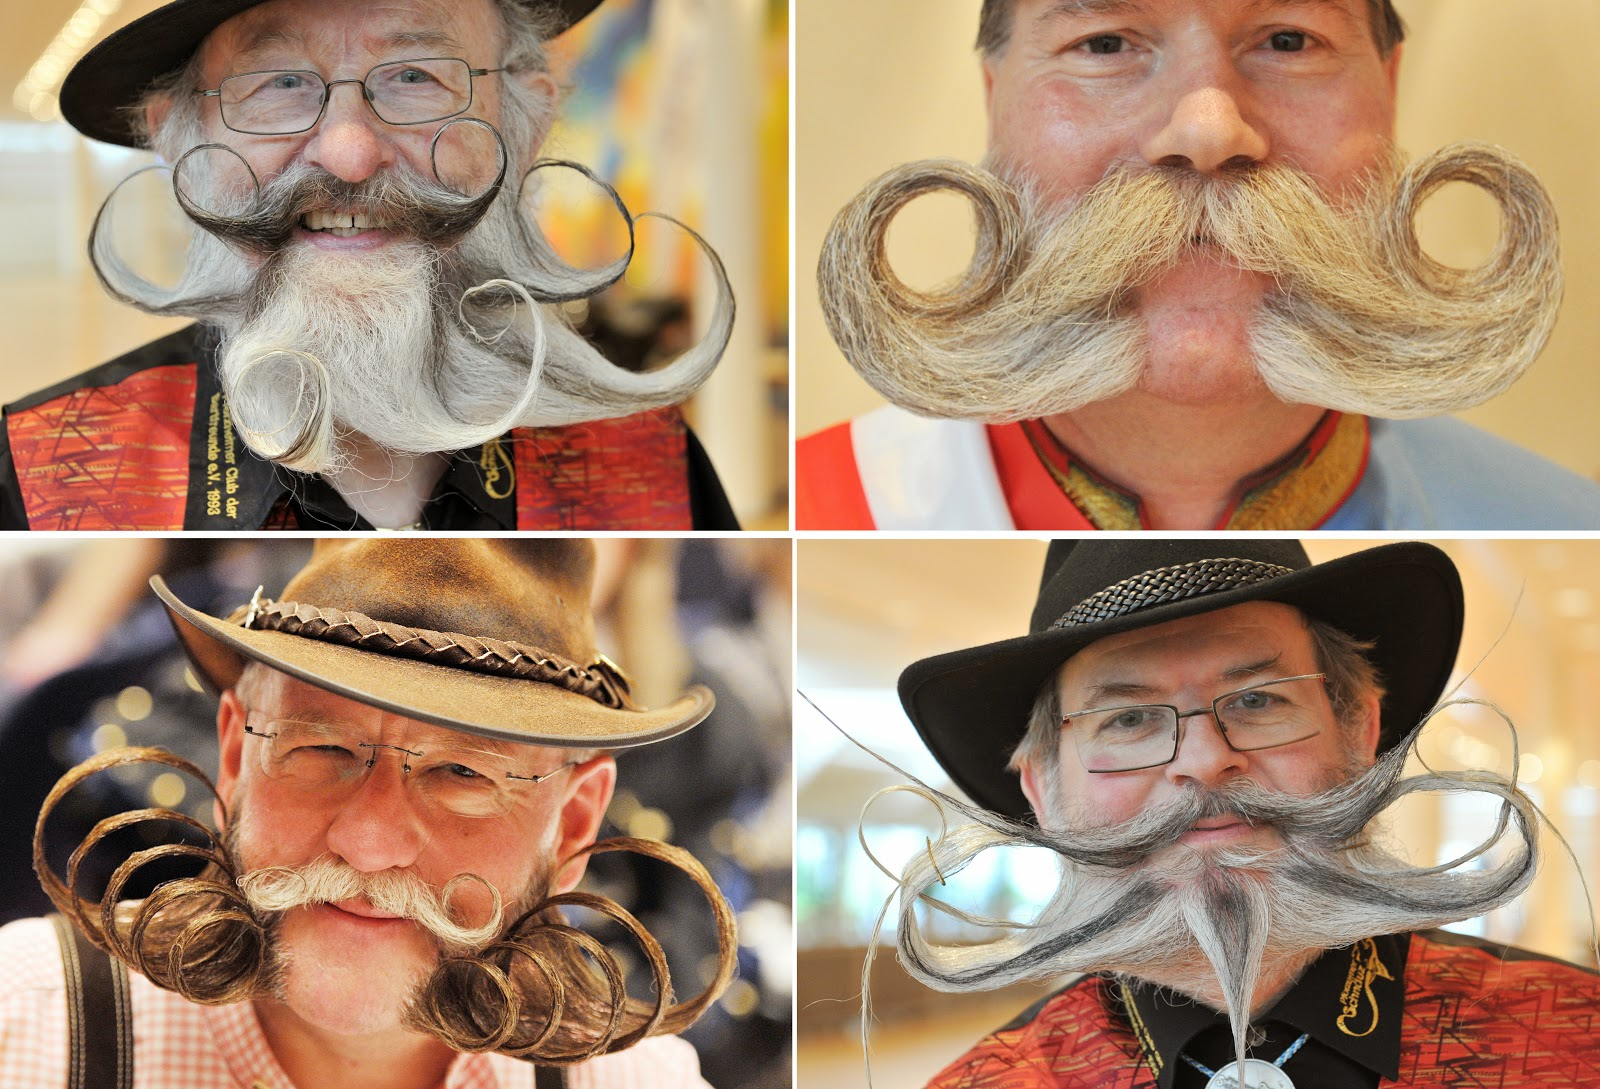 German Beard Championships in Pictures